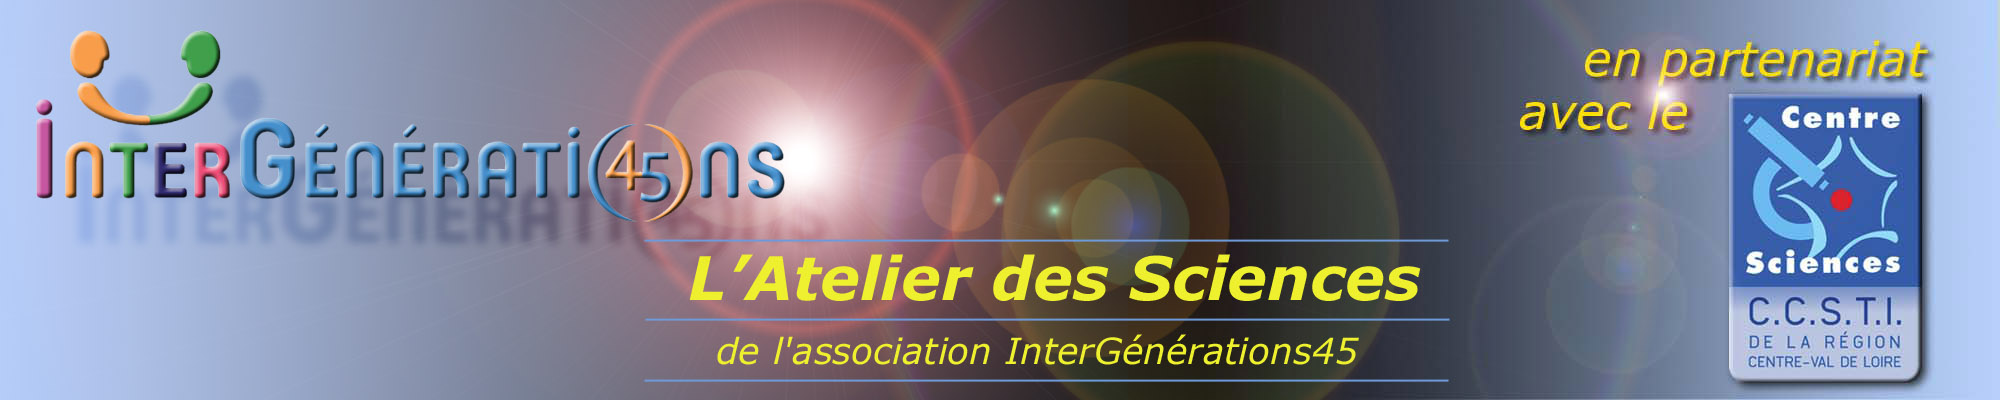 Atelier des Sciences